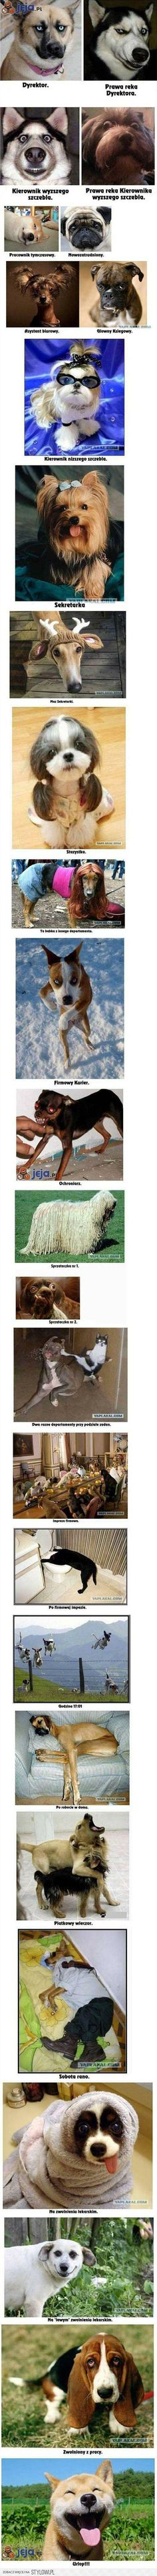 Cute Cats And Dogs, Animals And Pets, Funny Animals, Cute Animals, Wtf Funny, Hilarious, Funny Mems, Dogs Of The World, Man Humor